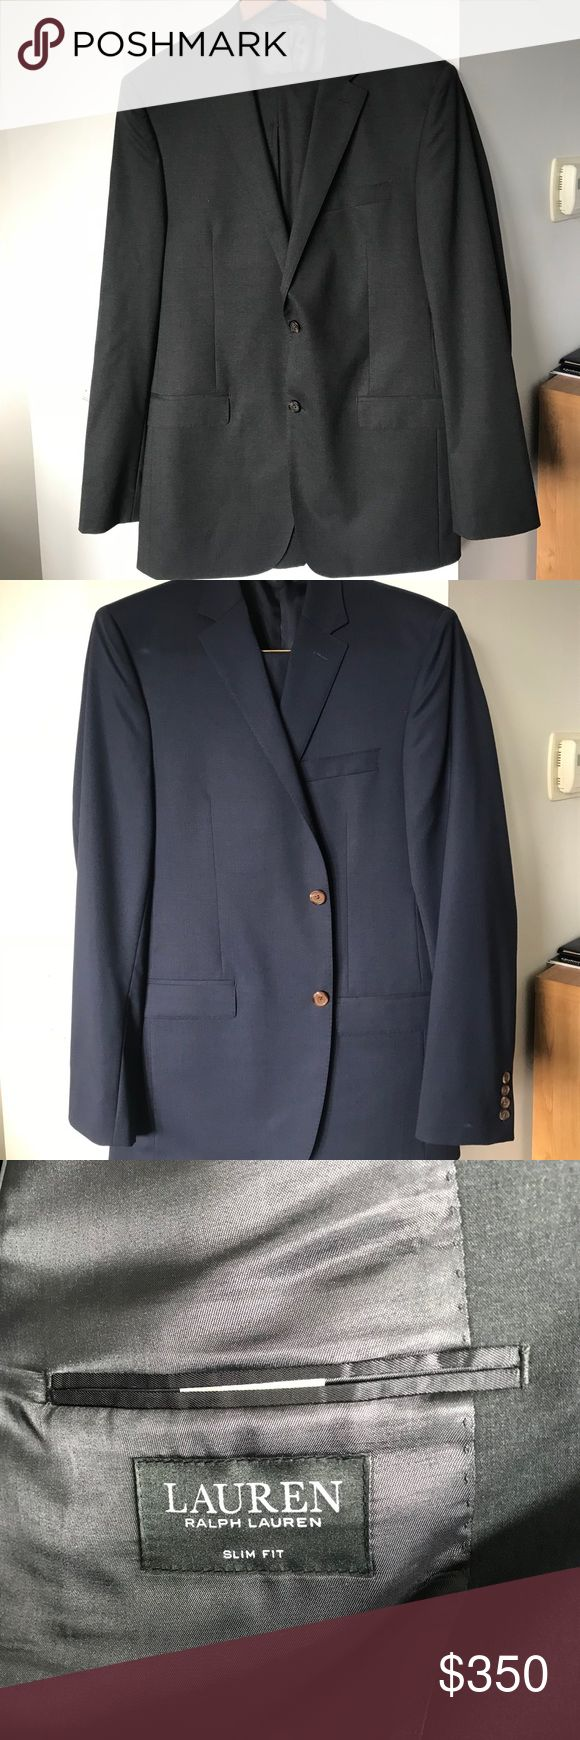 Ralph Lauren Slim-Fit Jacket and Dress Pants Lauren Ralph Lauren Navy Solid Total Stretch Slim-Fit Jacket and Dress Pants. Worn once or twice, looks brand new. Jacket: 42L Pants: 36W/34L. Willing to do both for $300 or separately jacket for $250 and pants for $100. Lauren Ralph Lauren Suits & Blazers Suits